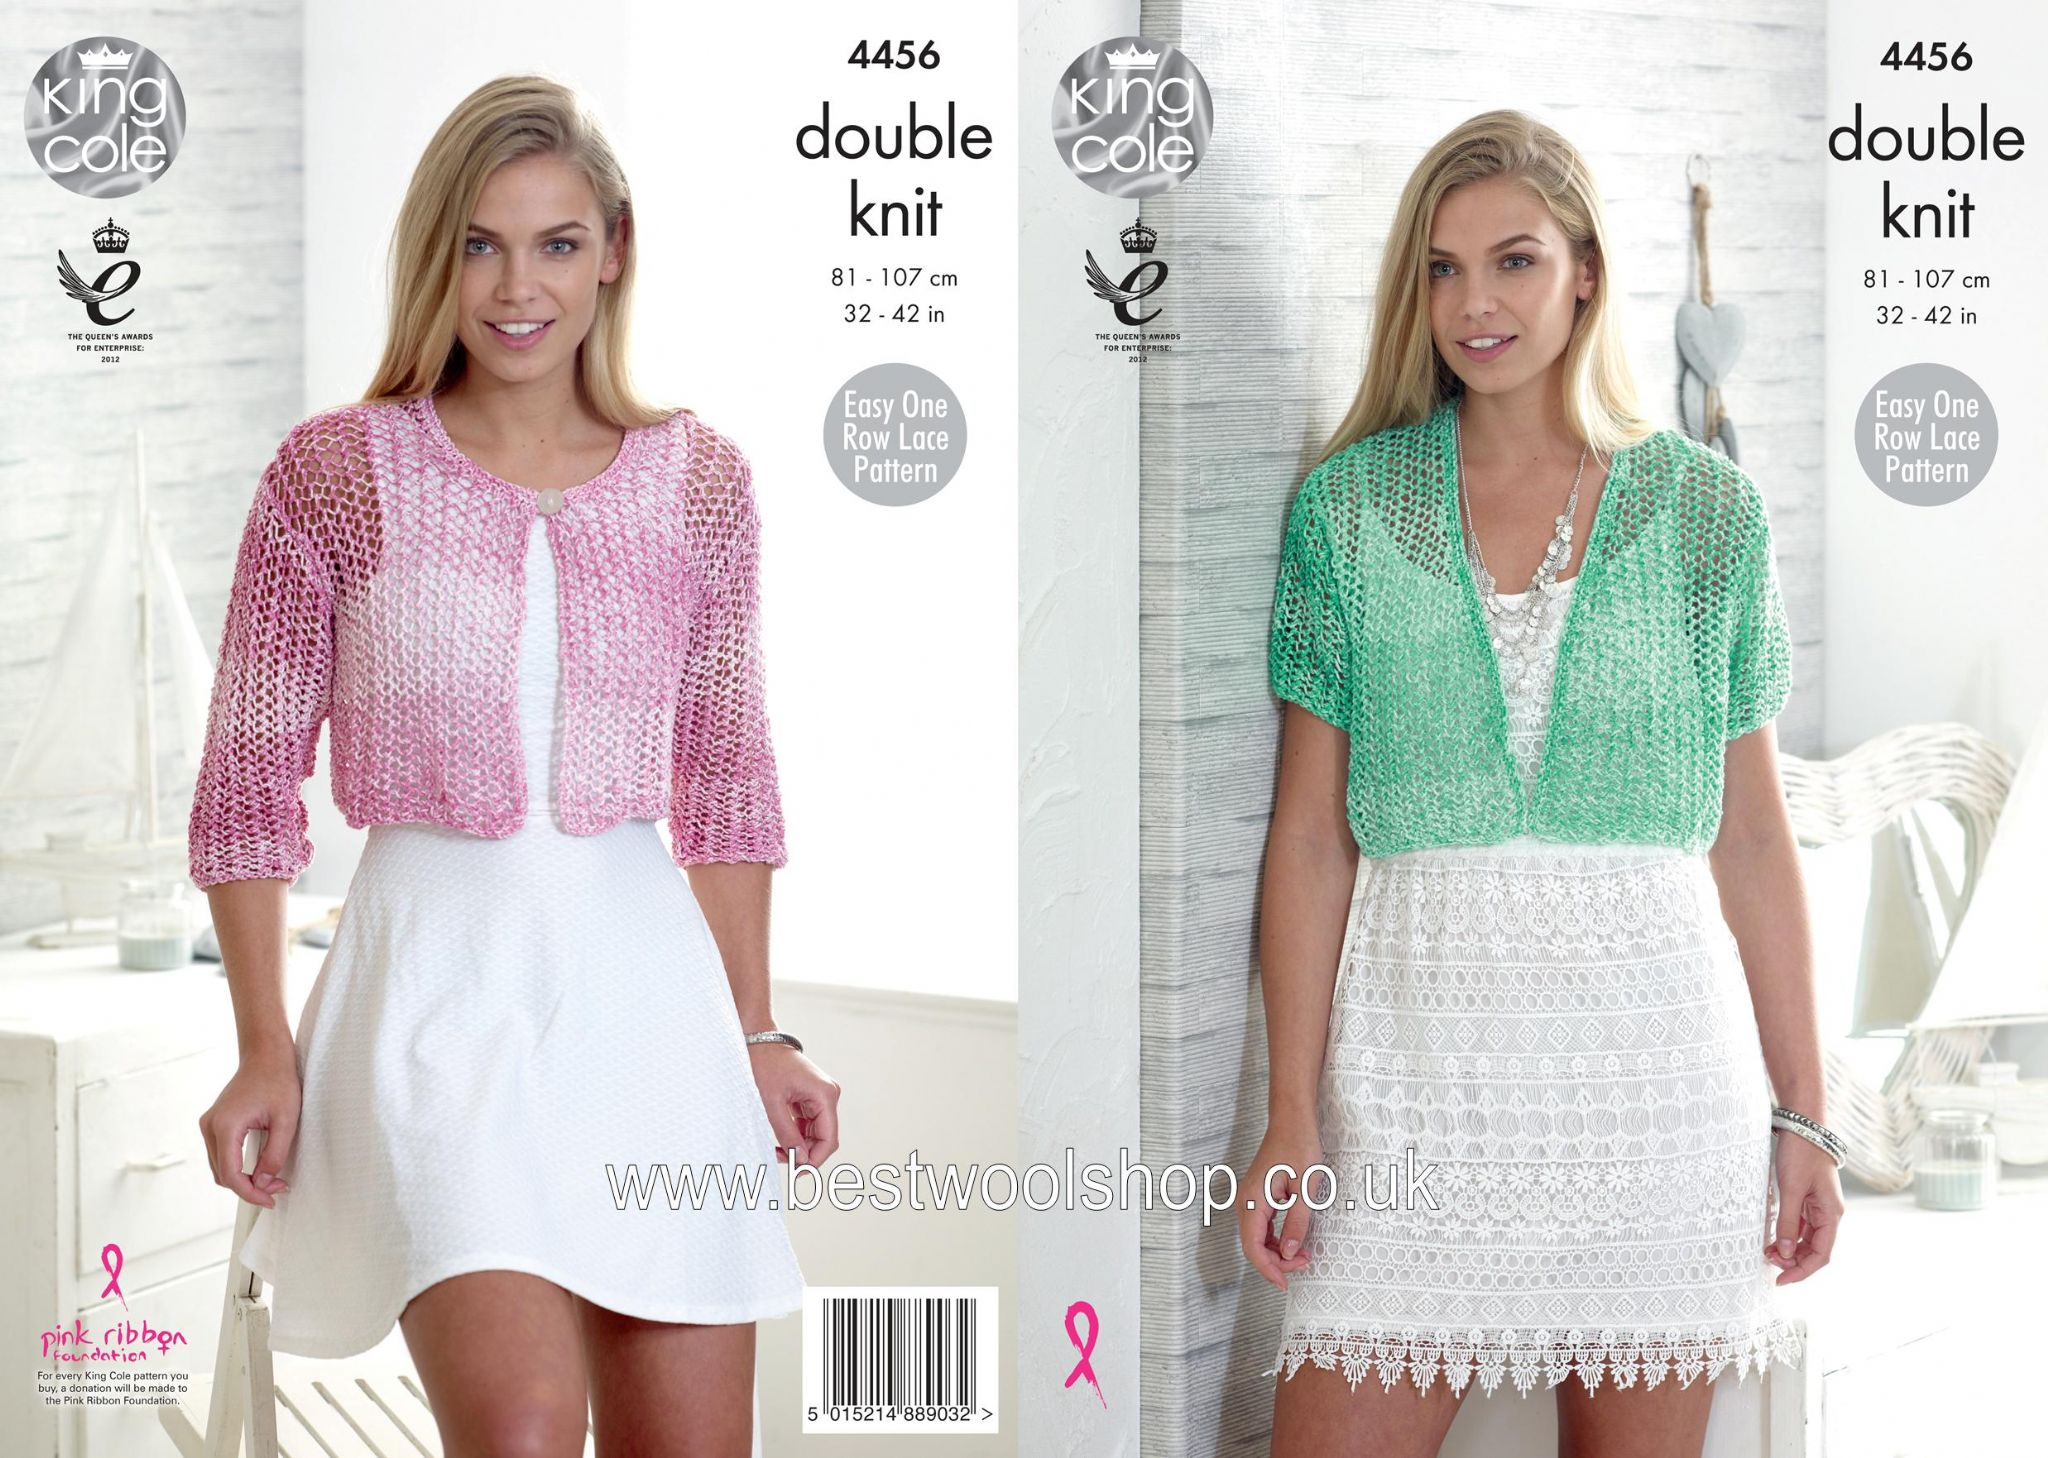 4456 - KING COLE VOGUE DK ONE ROW LACE PATTERN ROUND & V NECK ...